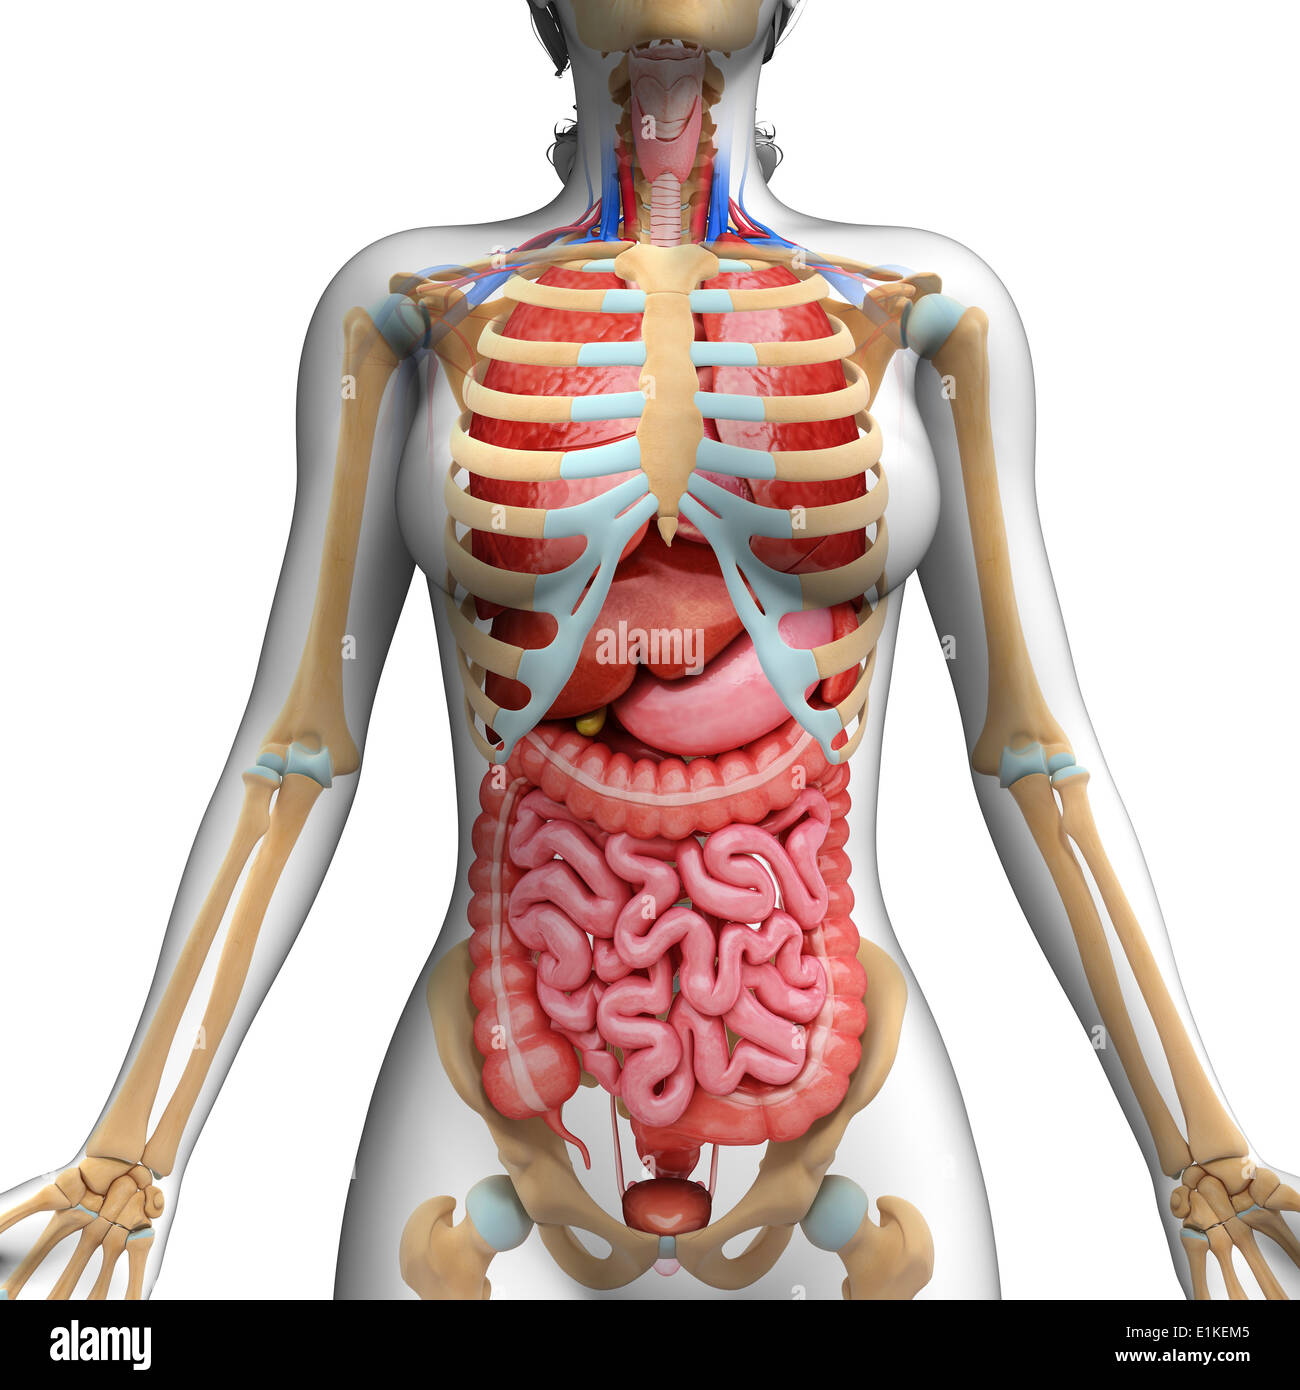 Human Digestive System And Ribcage Computer Artwork Stock Photo